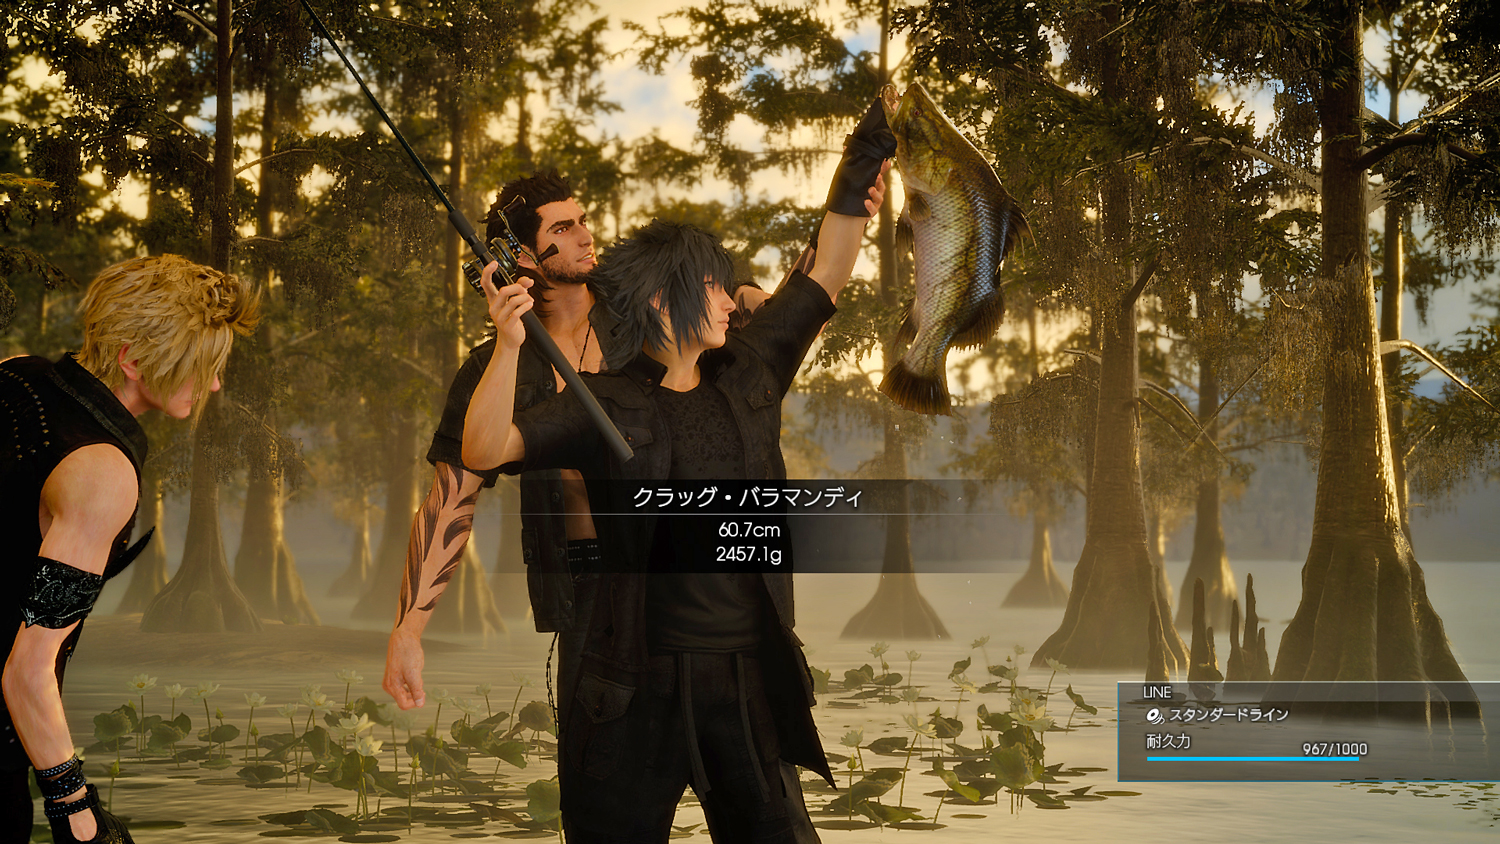 Final Fantasy Xv Lands September 30th Engadget